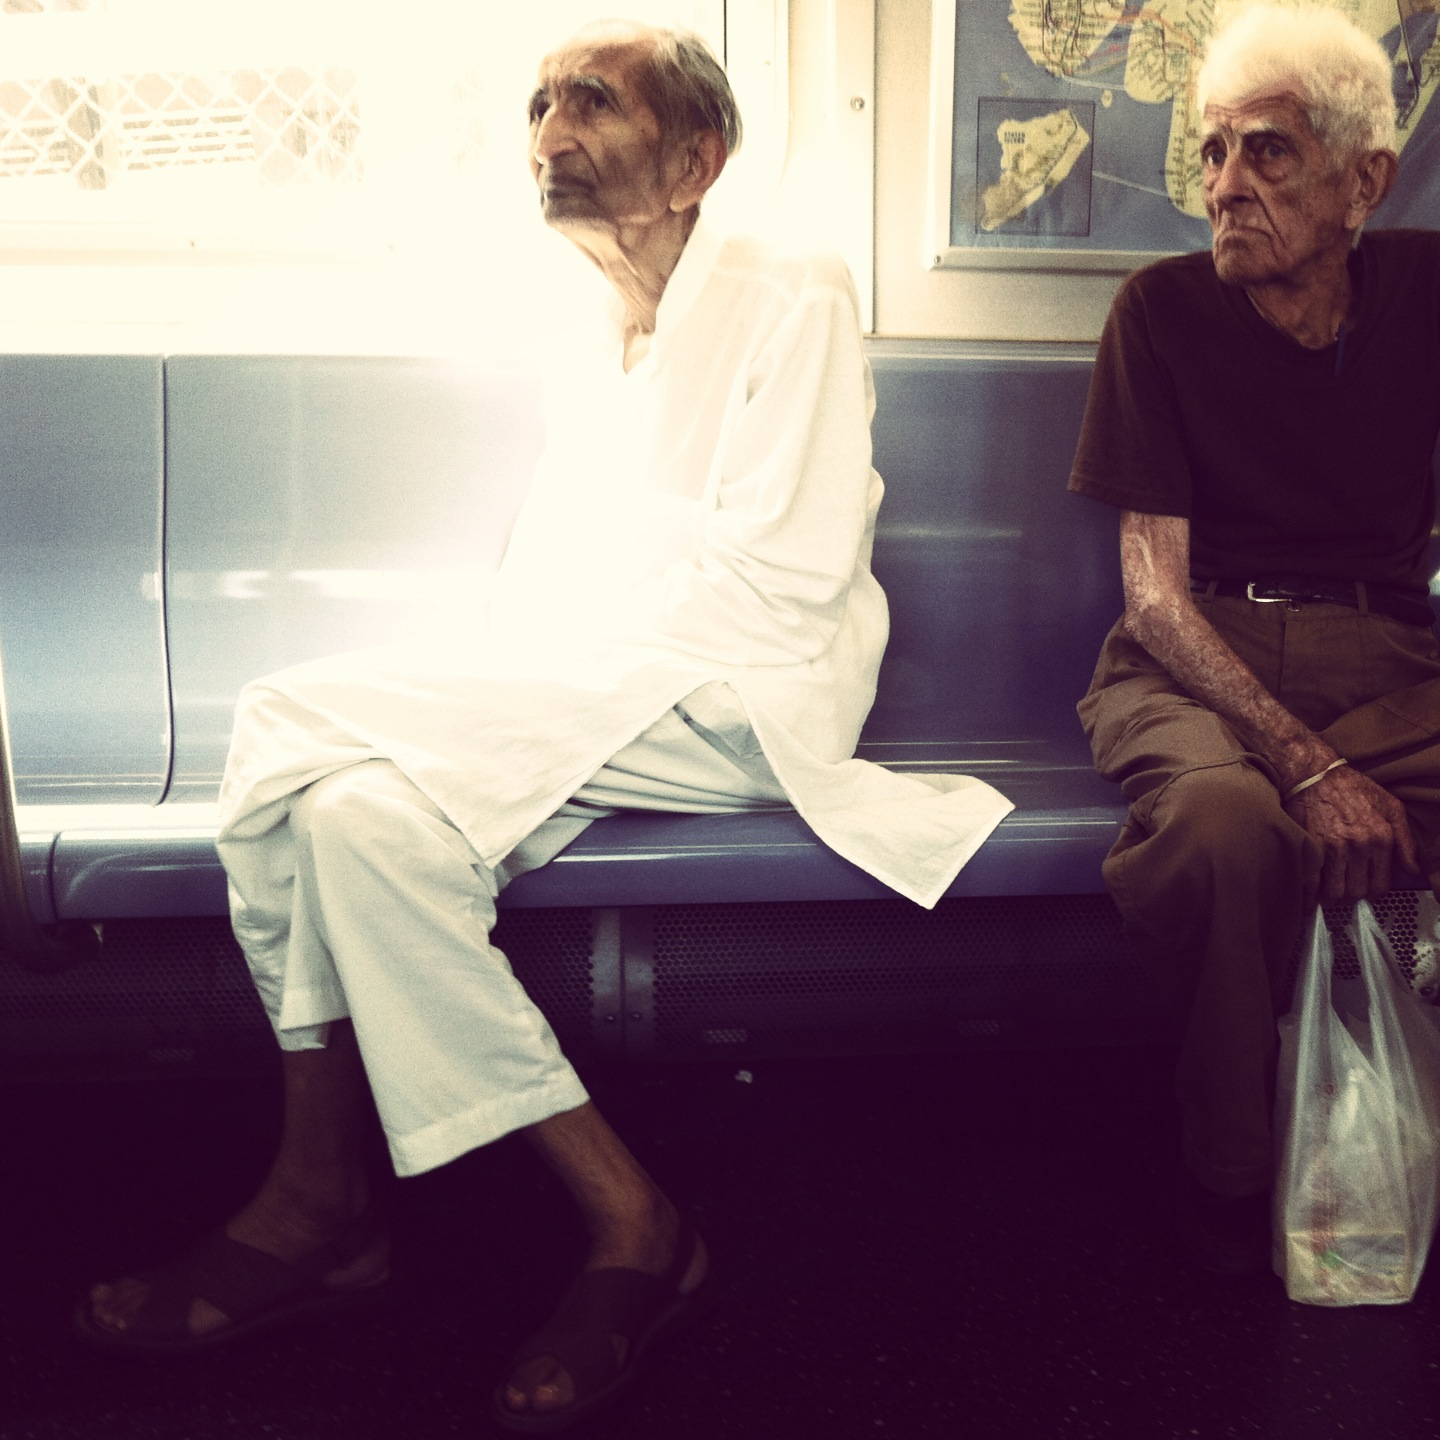 Old Strangers on the Subway 2